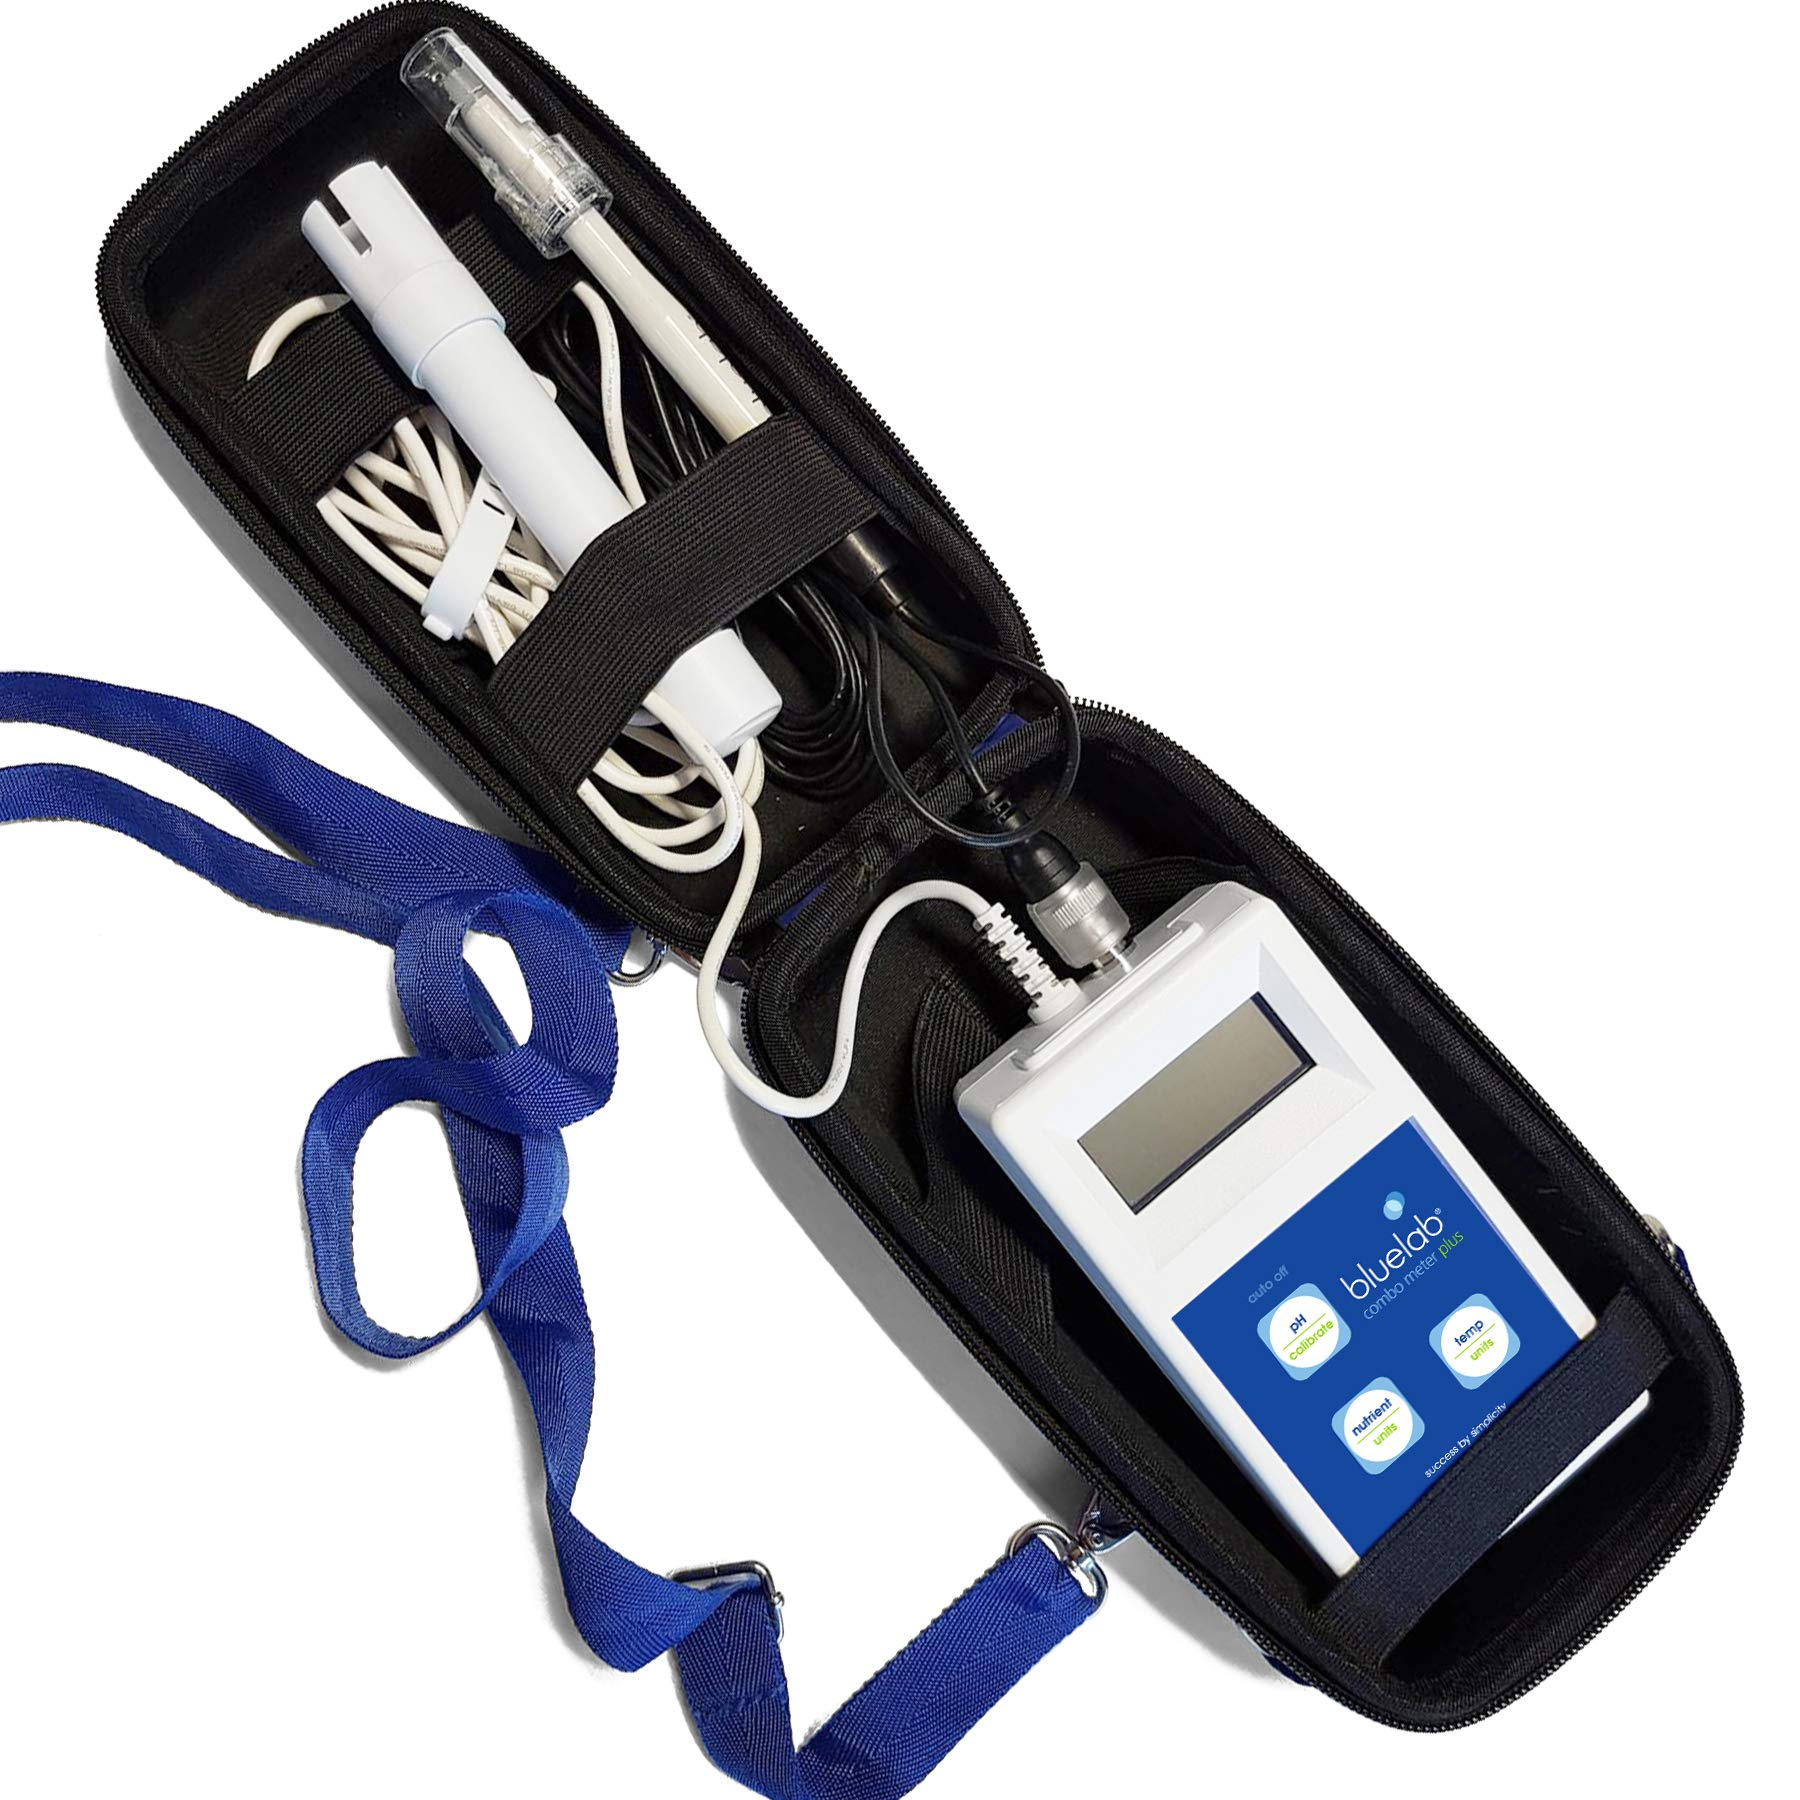 Bluelab Combo Meter Plus - Handheld Digital Hydroponic Nutrient and pH Meter for Measuring pH Levels, Conductivity & Temperature in Soil & Plants - Accurate pH Measurements - Bonus Carry Case Included by Bluelab (Image #8)